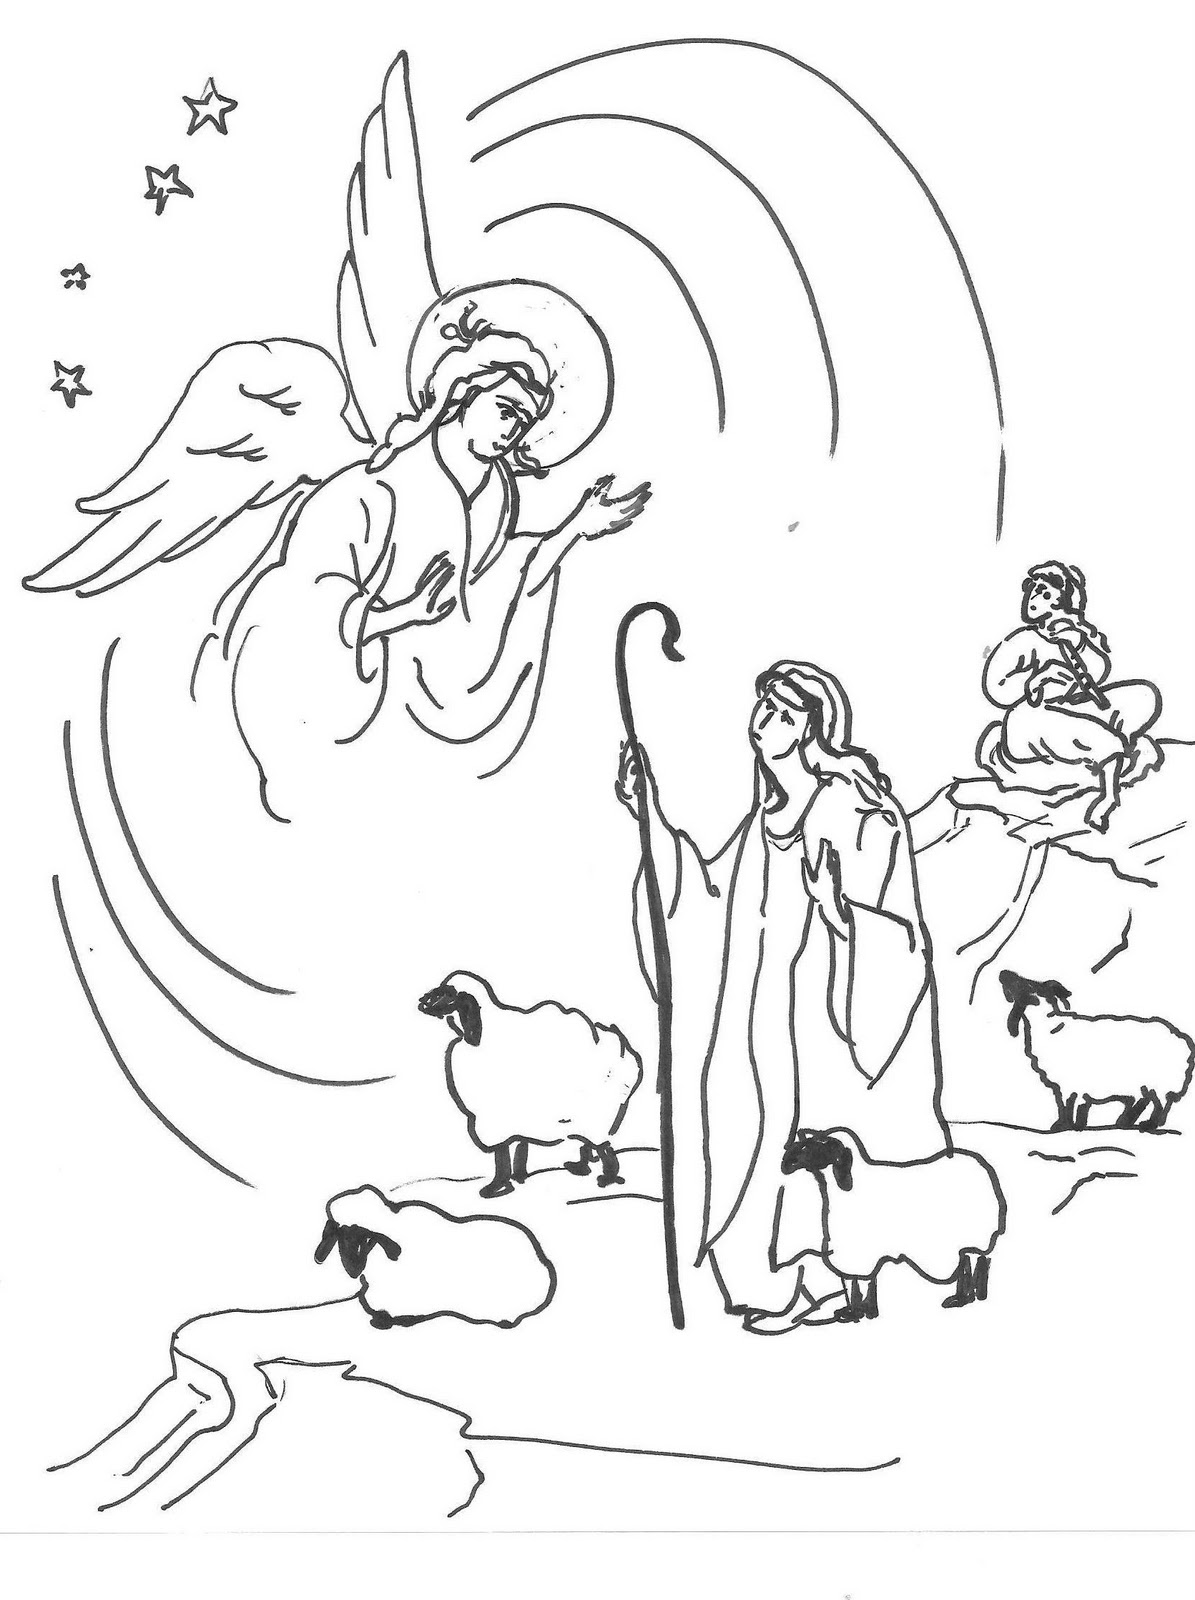 Free christmas shepherds coloring pages ~ Orthodox Christian Education: Christmas Coloring & Symbolism